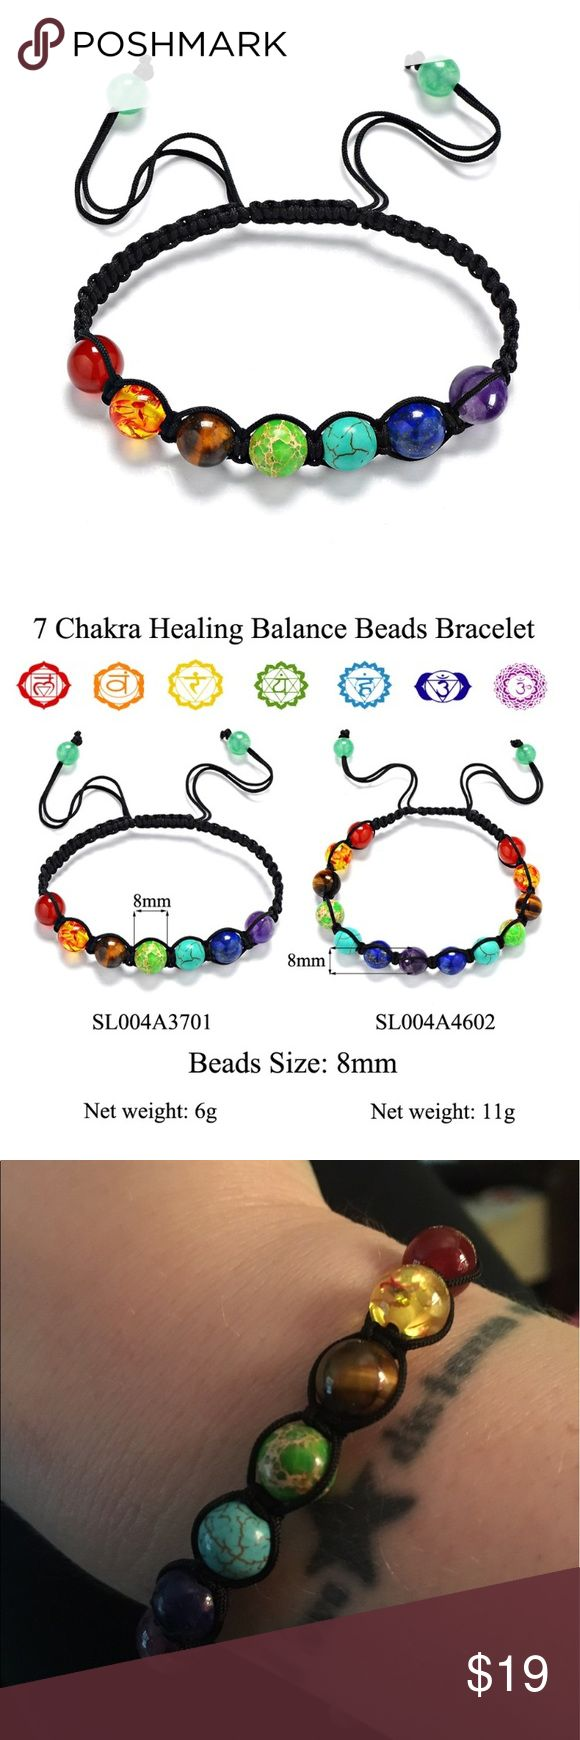 7 Chakras Healing Balance beads, bracelet/anklet Limited supply . Well made. Adjustable size with pull strings. Boho yogi fashion. Balance your chakras! (Free people tagged for exposure- item NOT free people brand) Free People Jewelry Bracelets